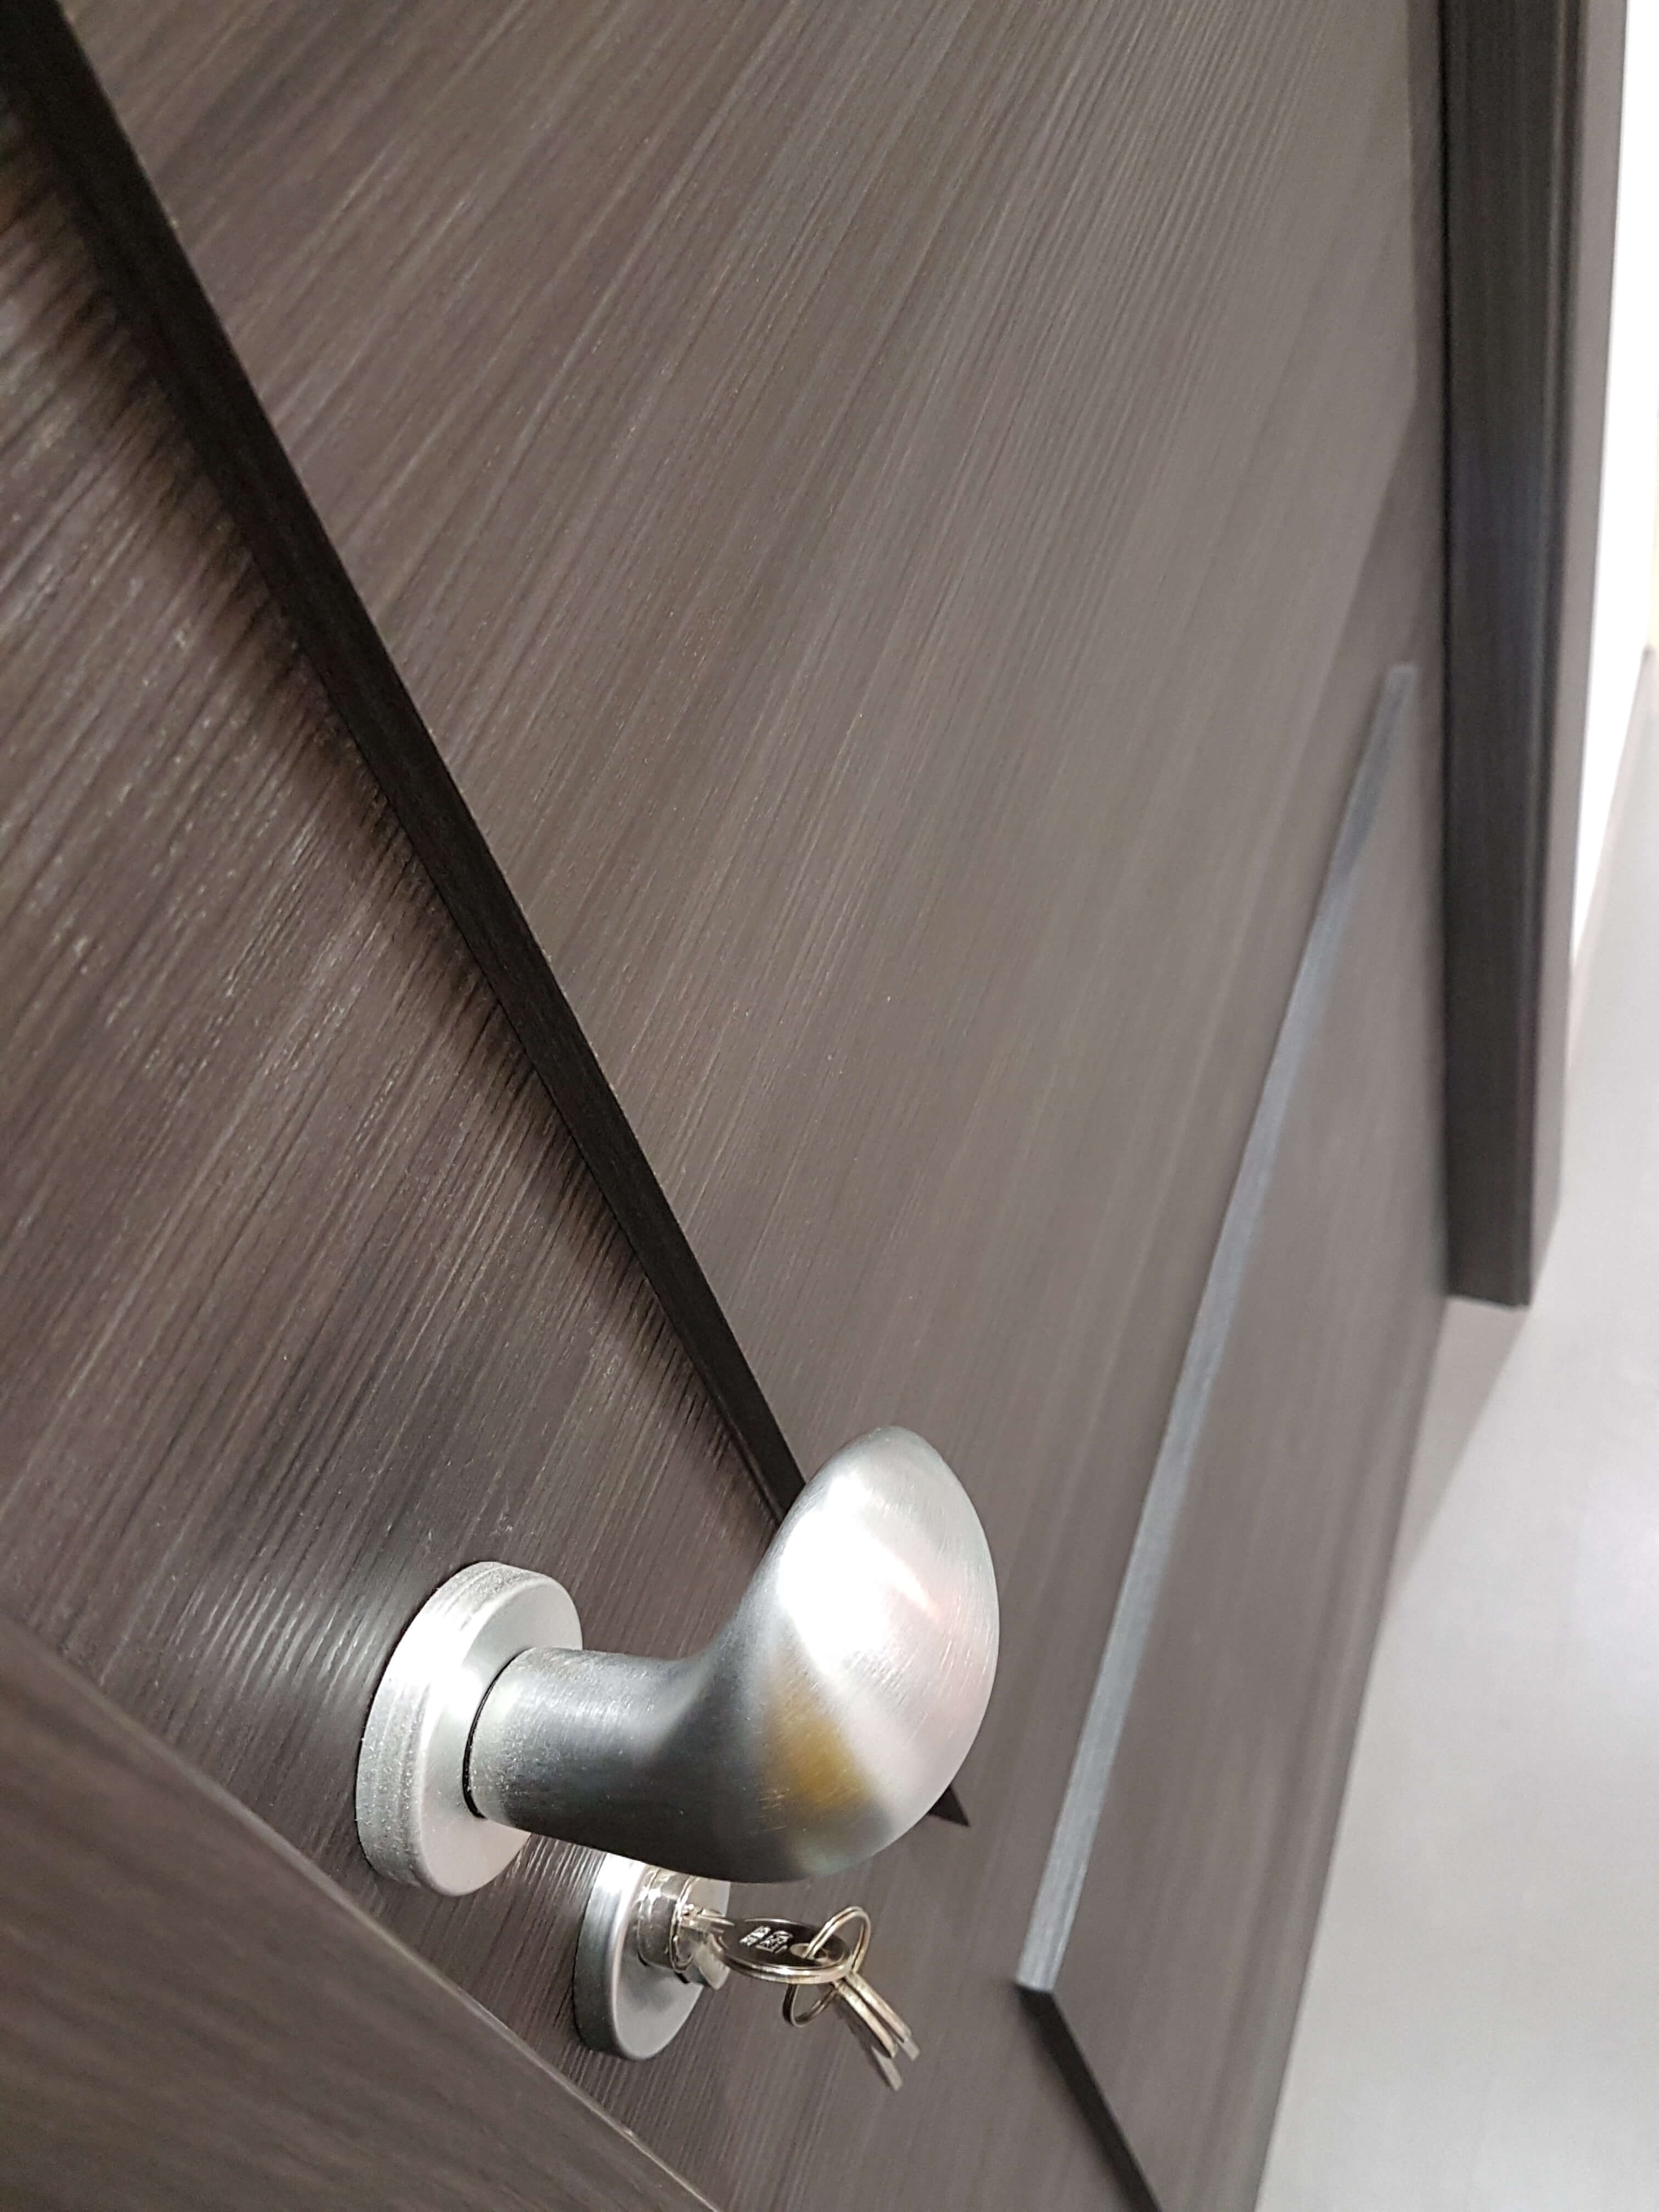 soundproof door handle